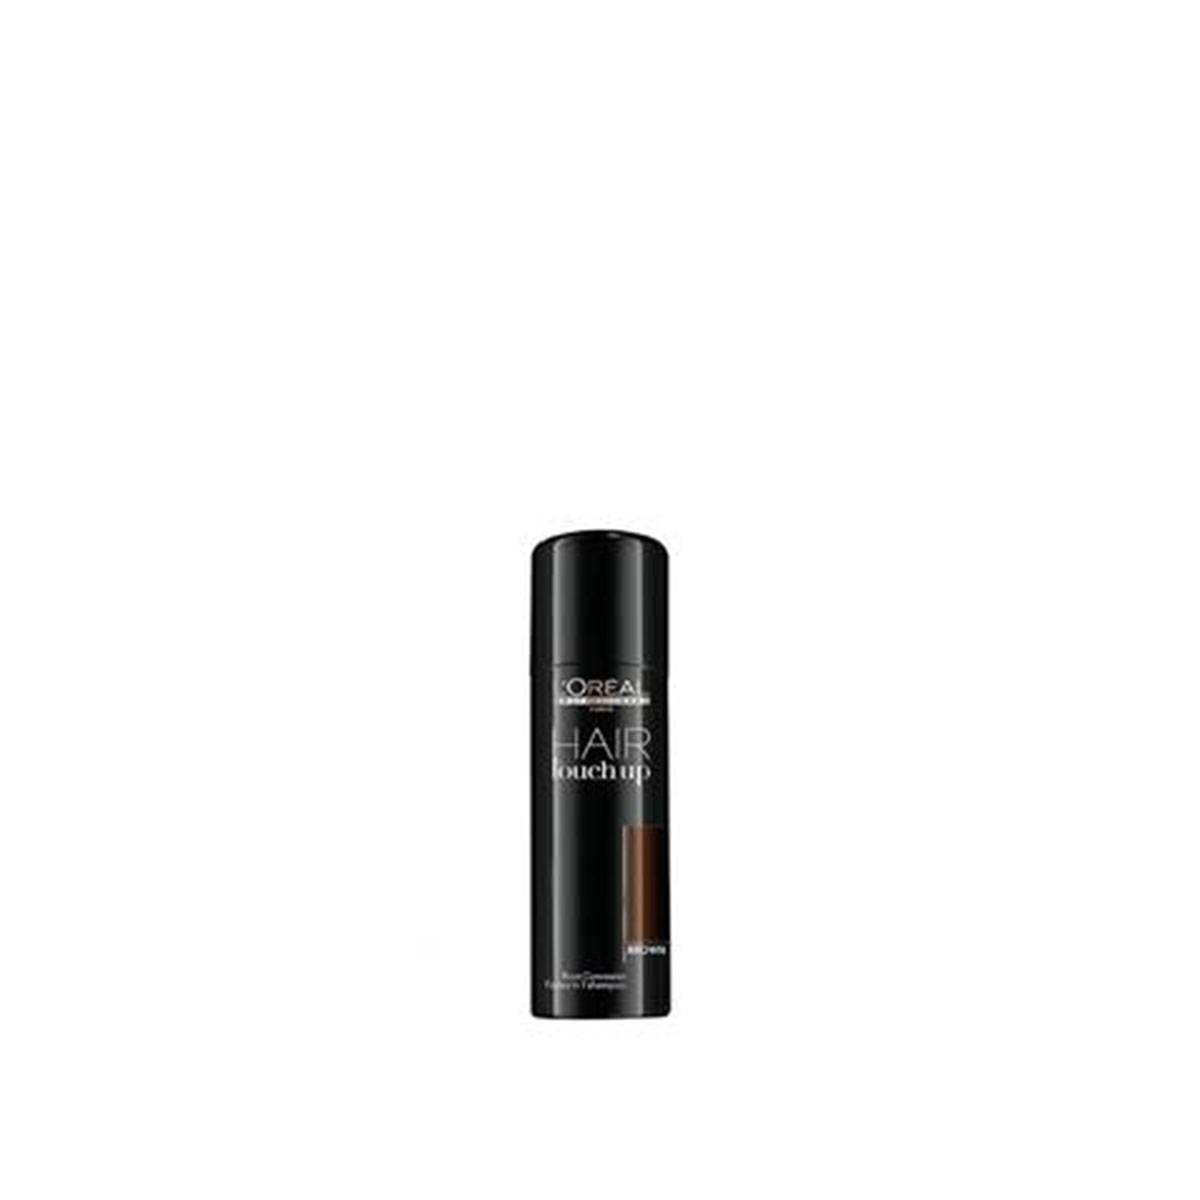 Hair Touch Up Brown 75ml Spray